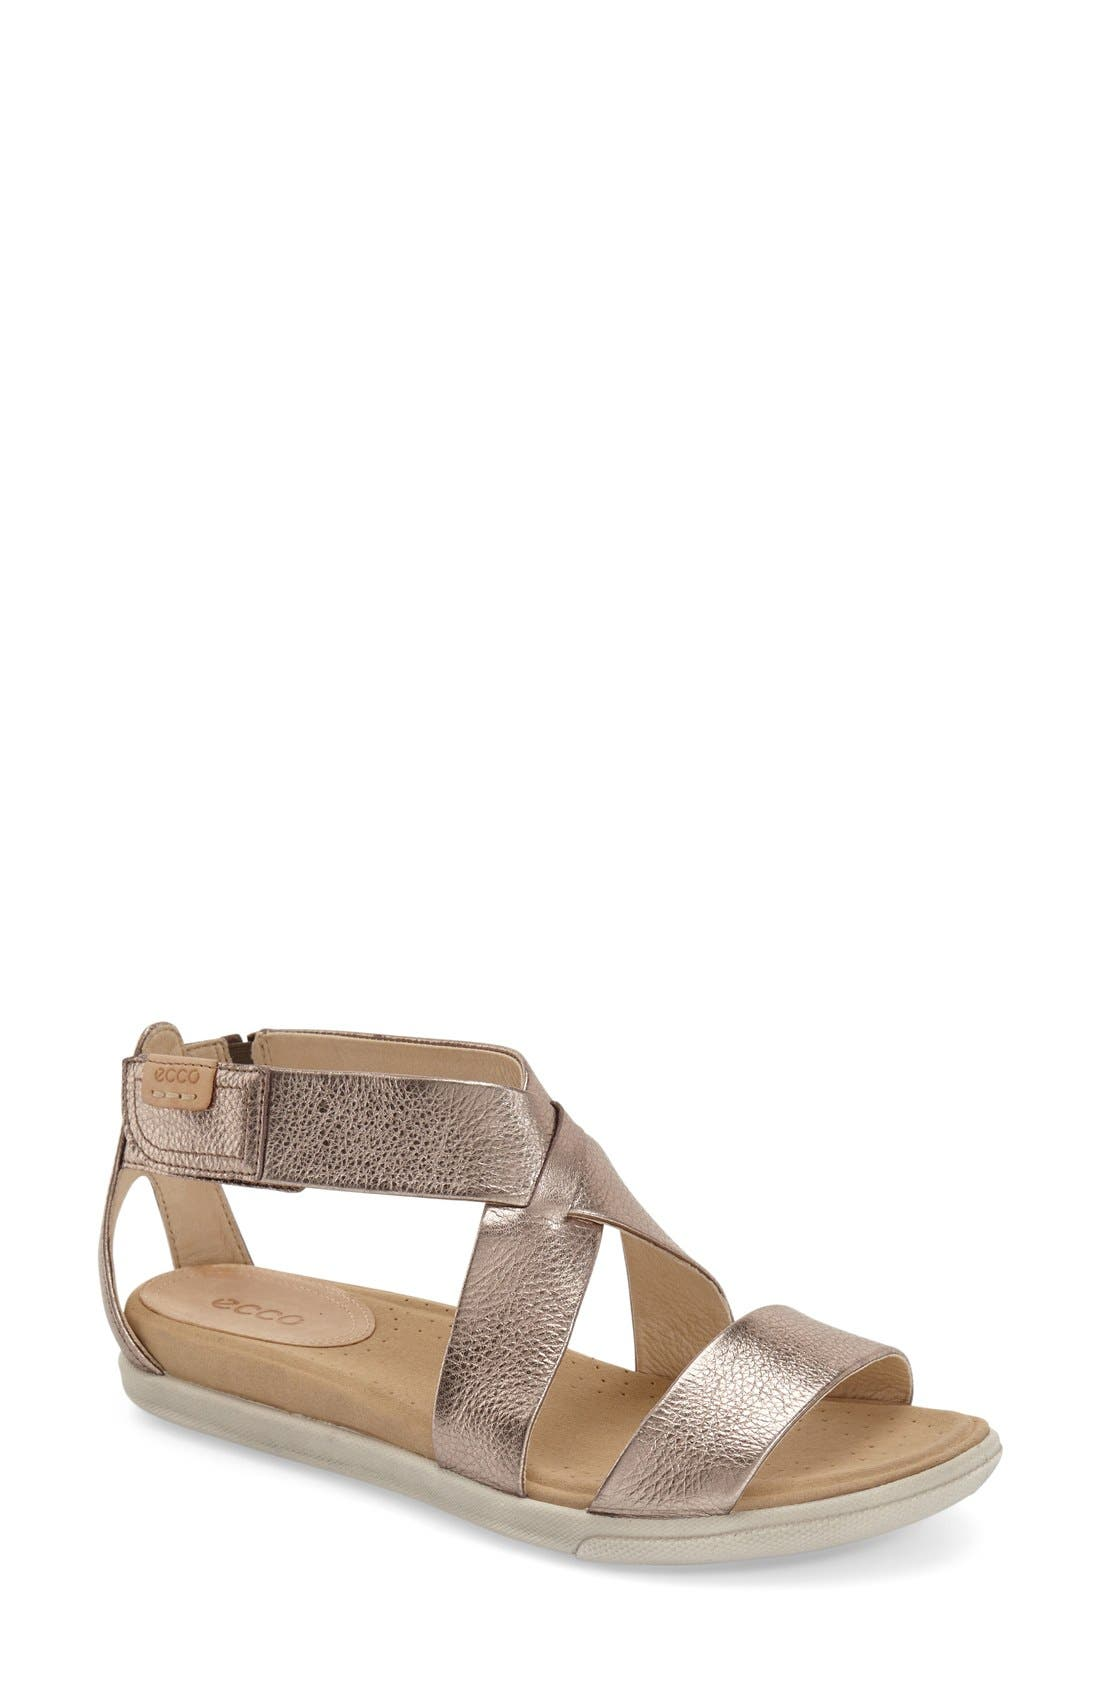 Alternate Image 1 Selected - ECCO Damara Sandal (Women)